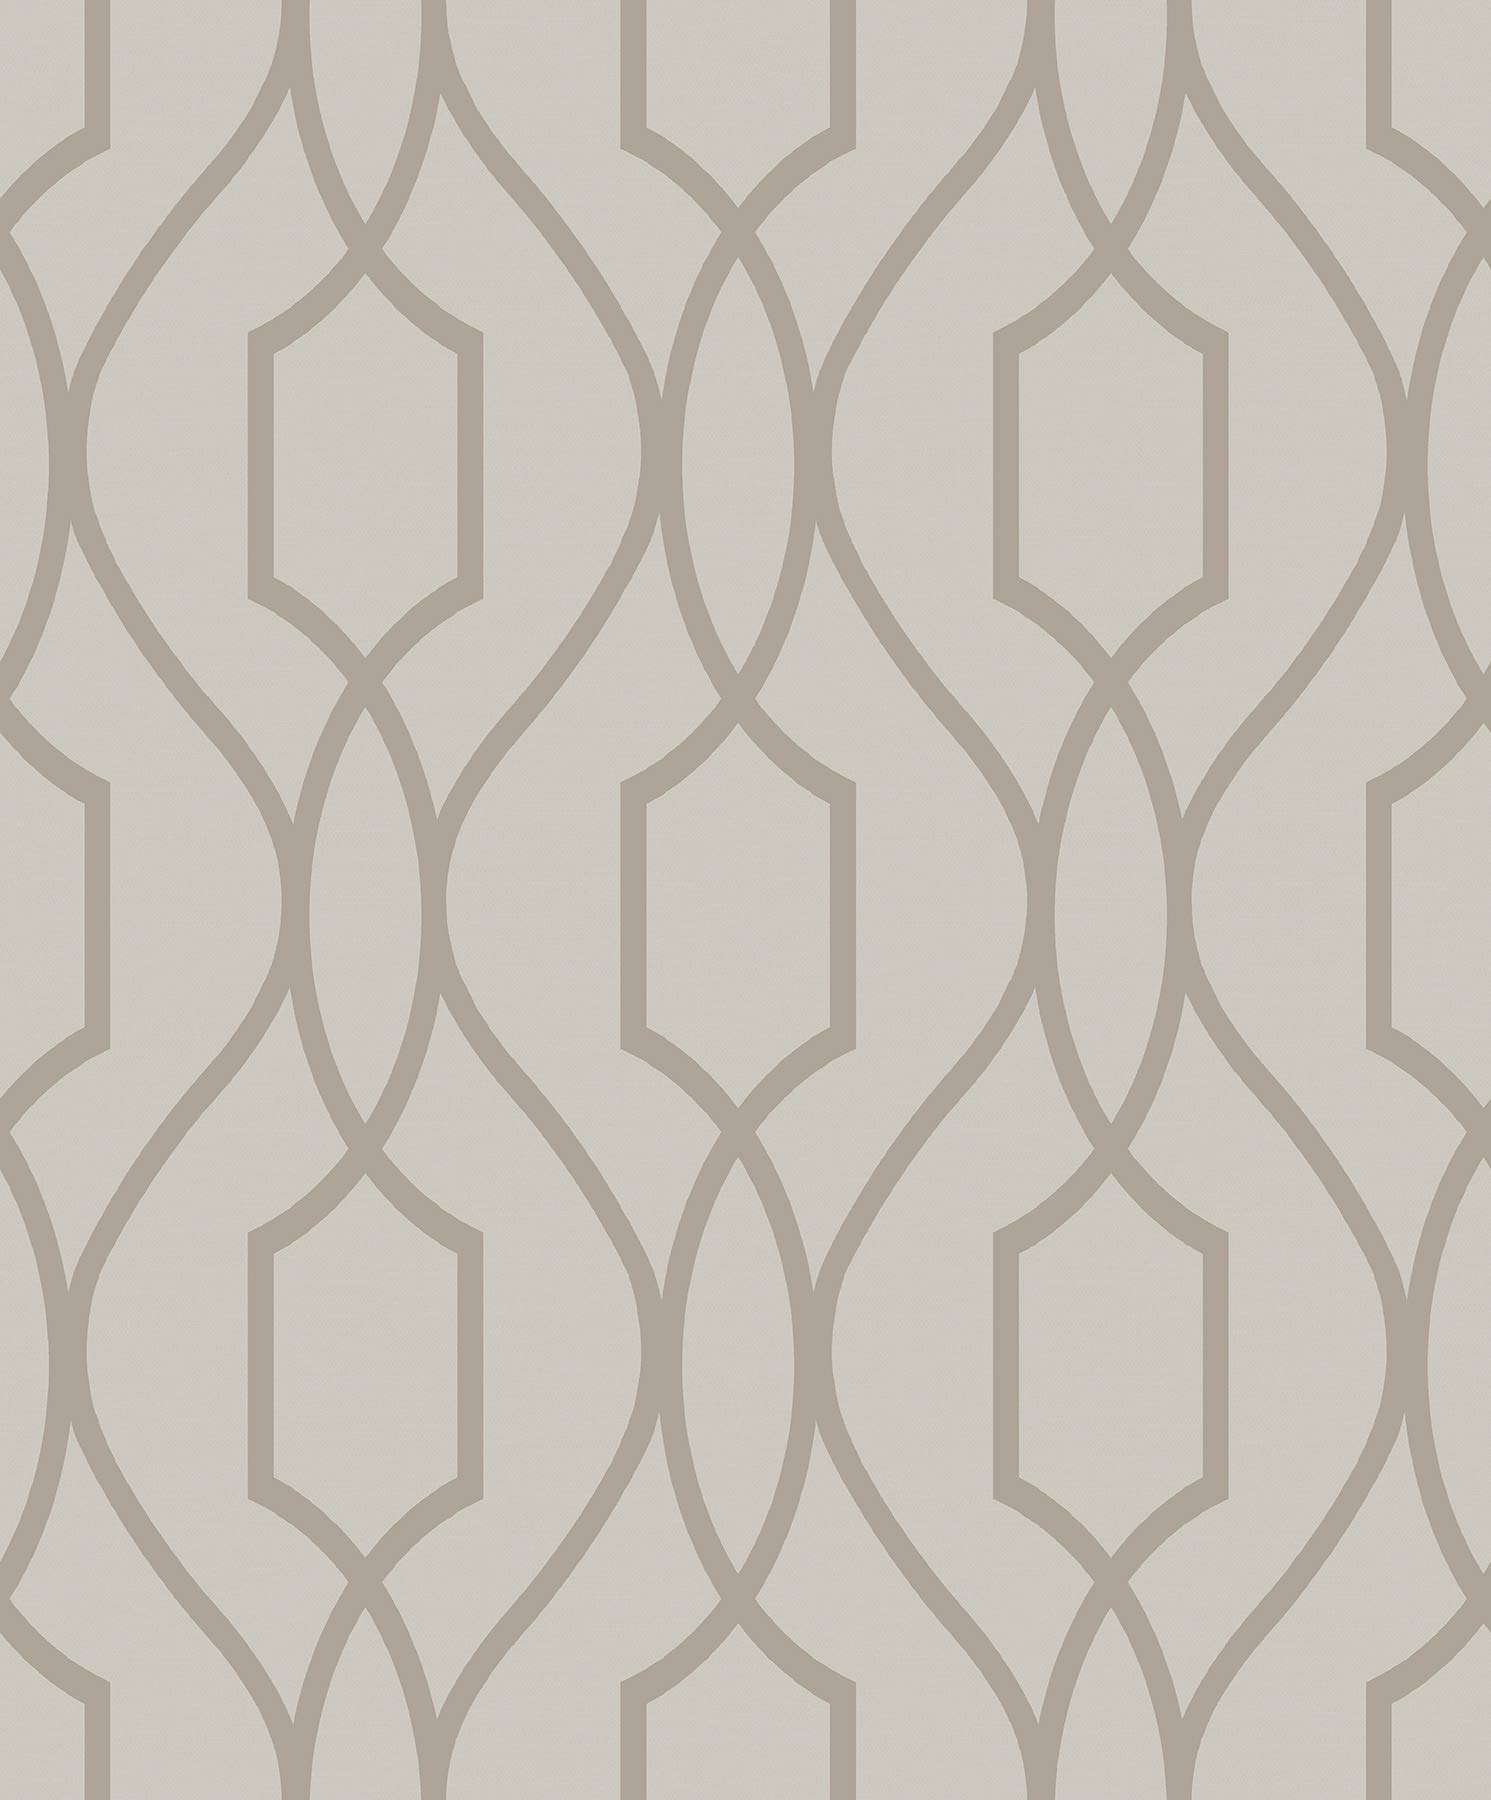 Advantage 2809-87713 Evelyn Bronze Trellis Wallpaper by Advantage